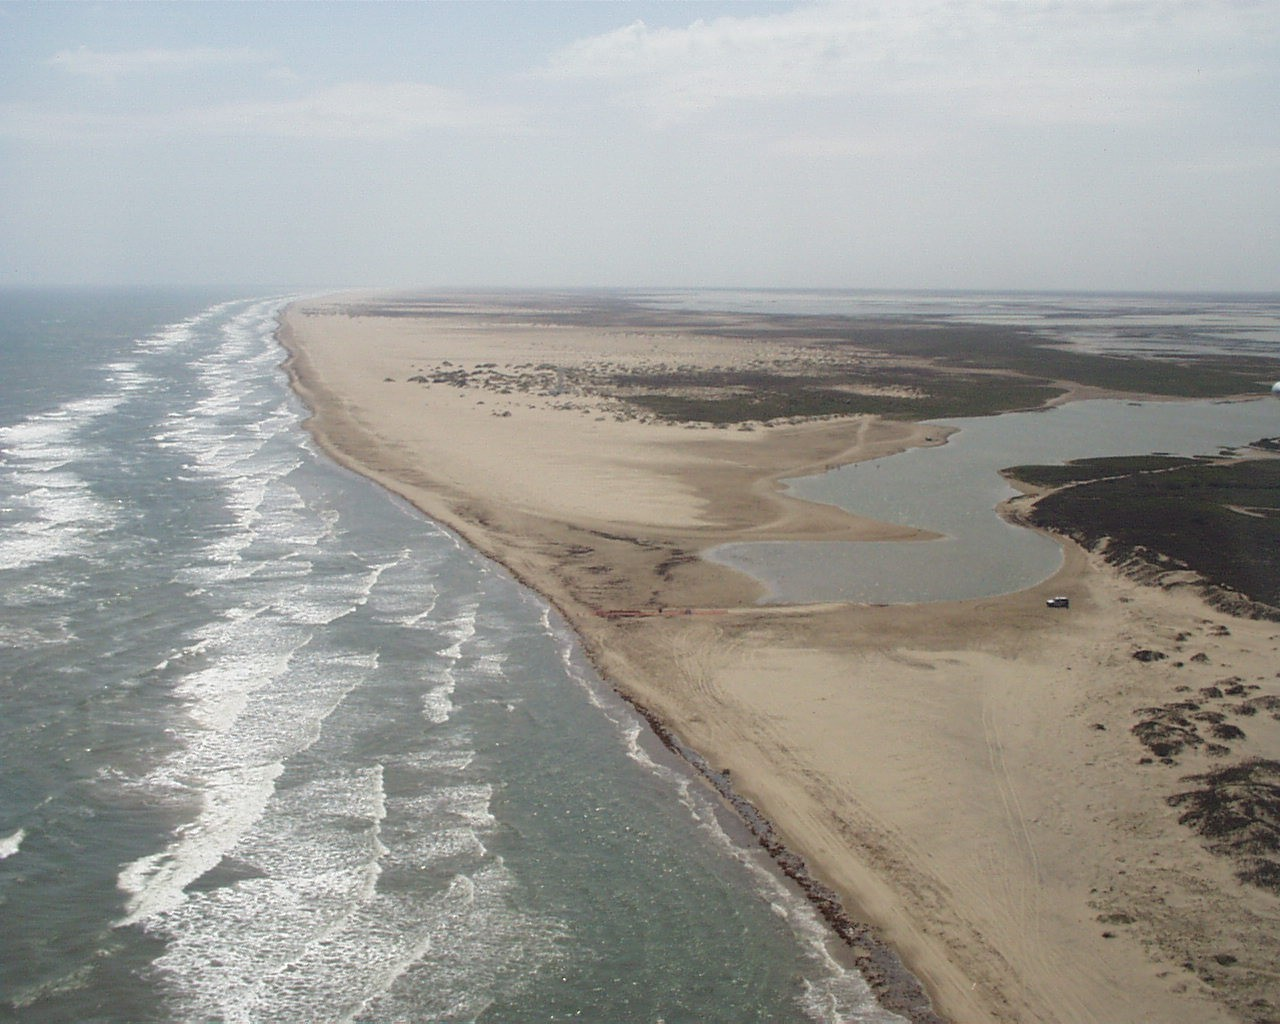 In 2001, the Rio Grande didn't quite make it to the Gulf of Mexico for the first time. Source: texaslivingwaters.org